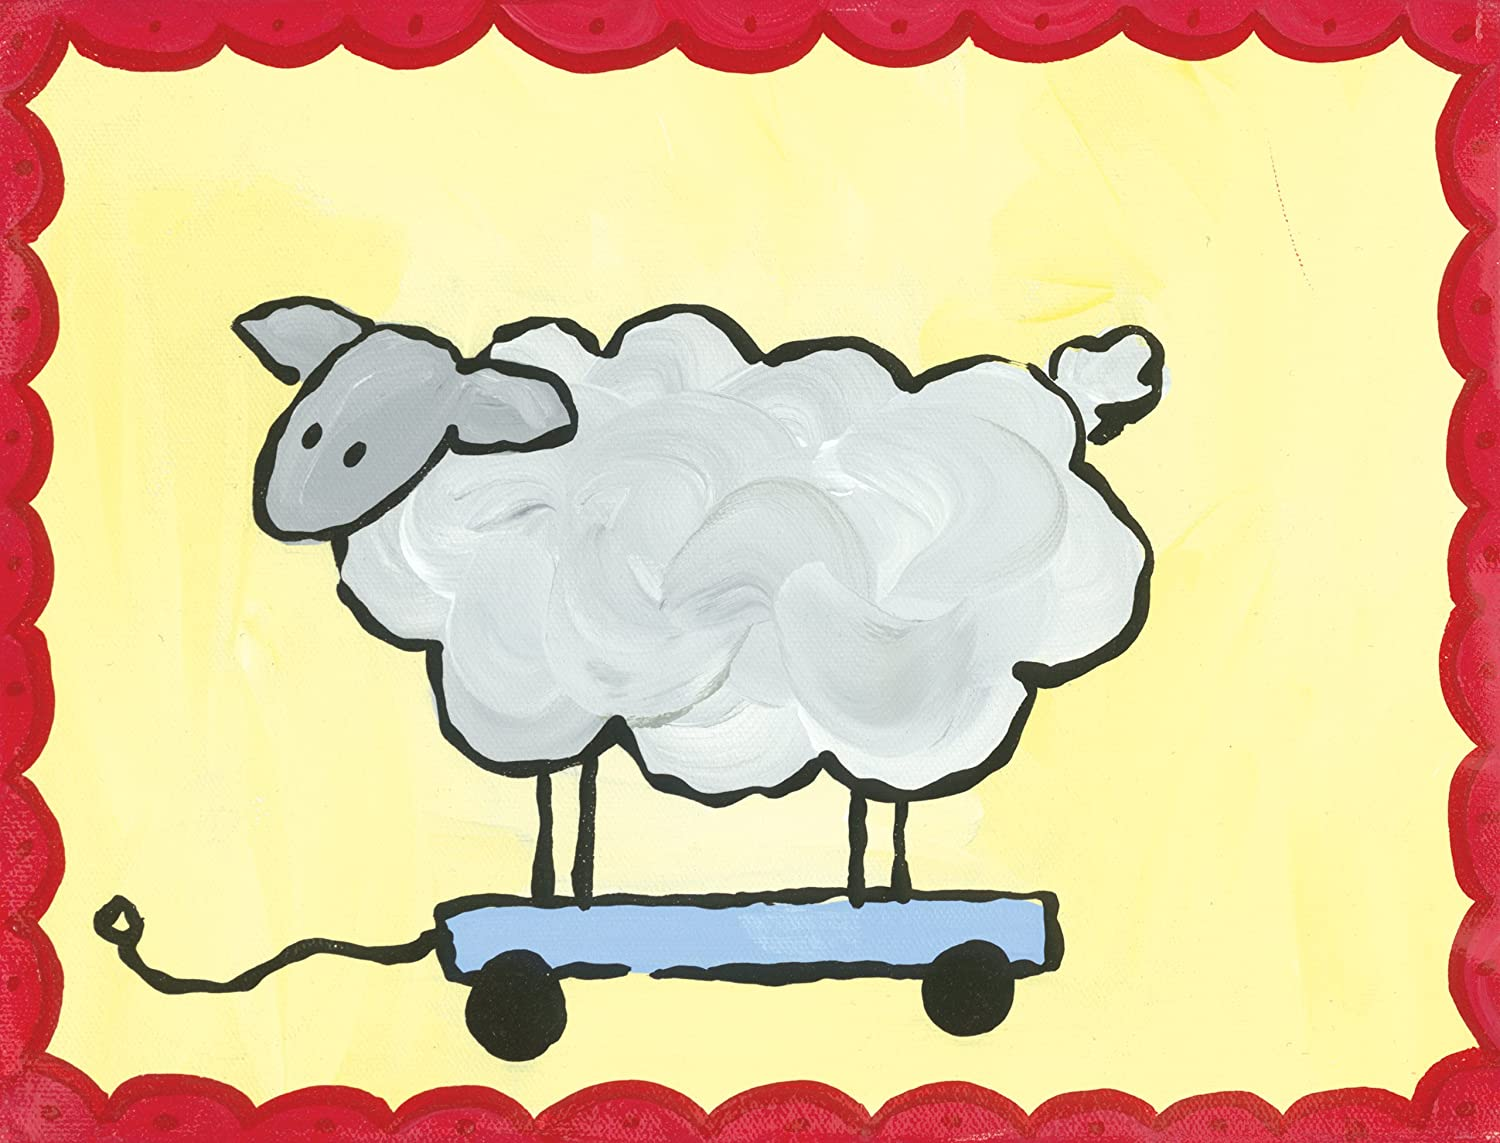 Amazon.com: Oopsy Daisy Pull Along Sheep Stretched Canvas Art by ...